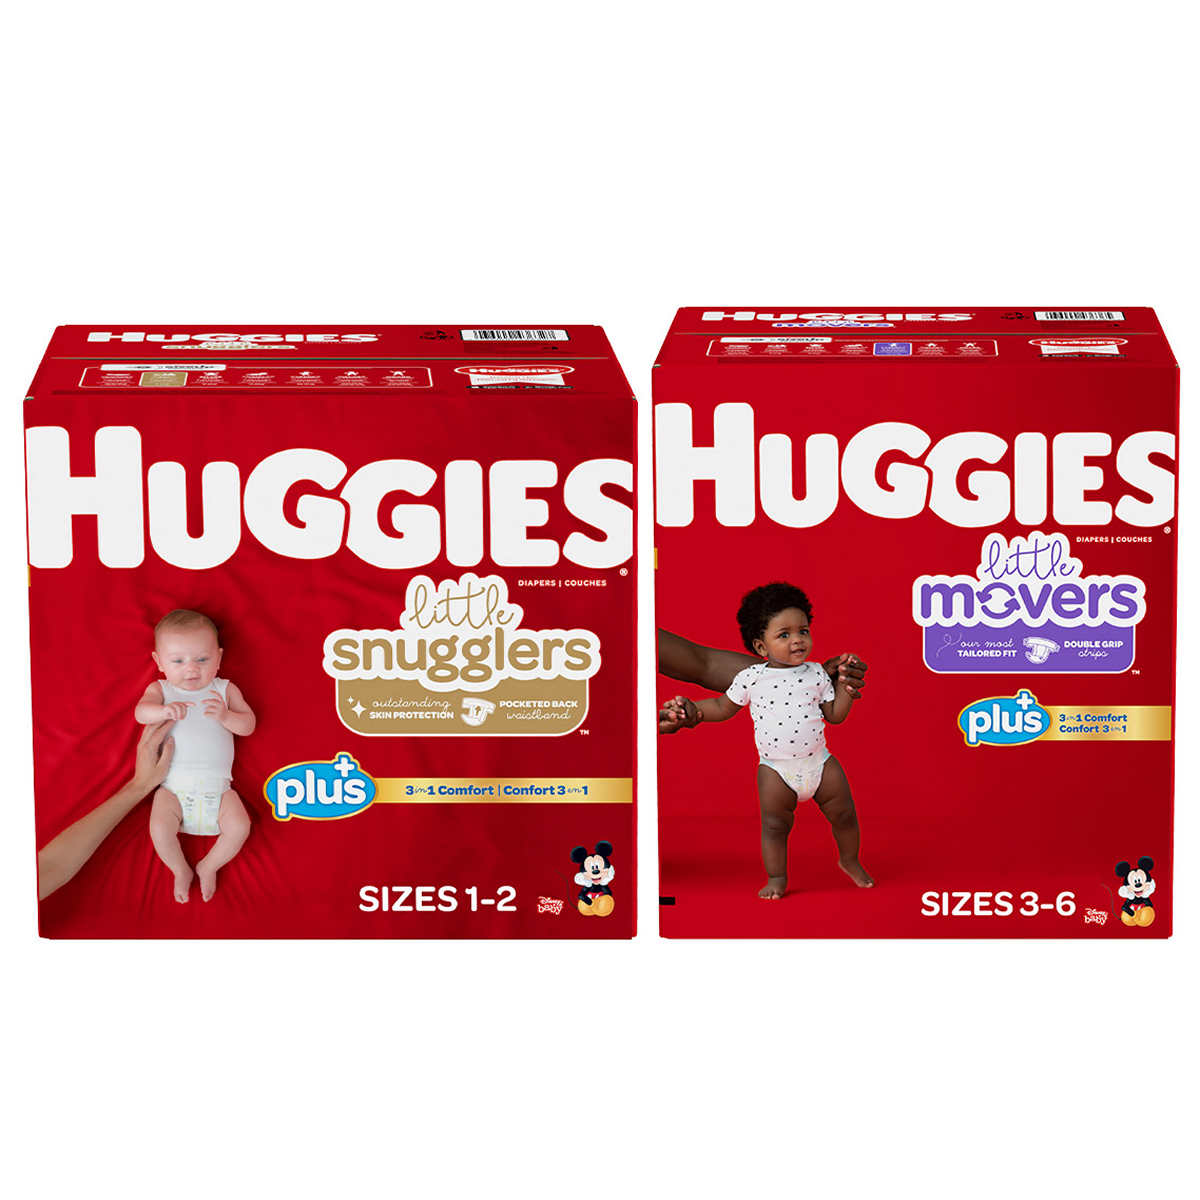 huggies little snugglers plus diapers size 2 174 ct sealed 36000436341 ebay. Black Bedroom Furniture Sets. Home Design Ideas